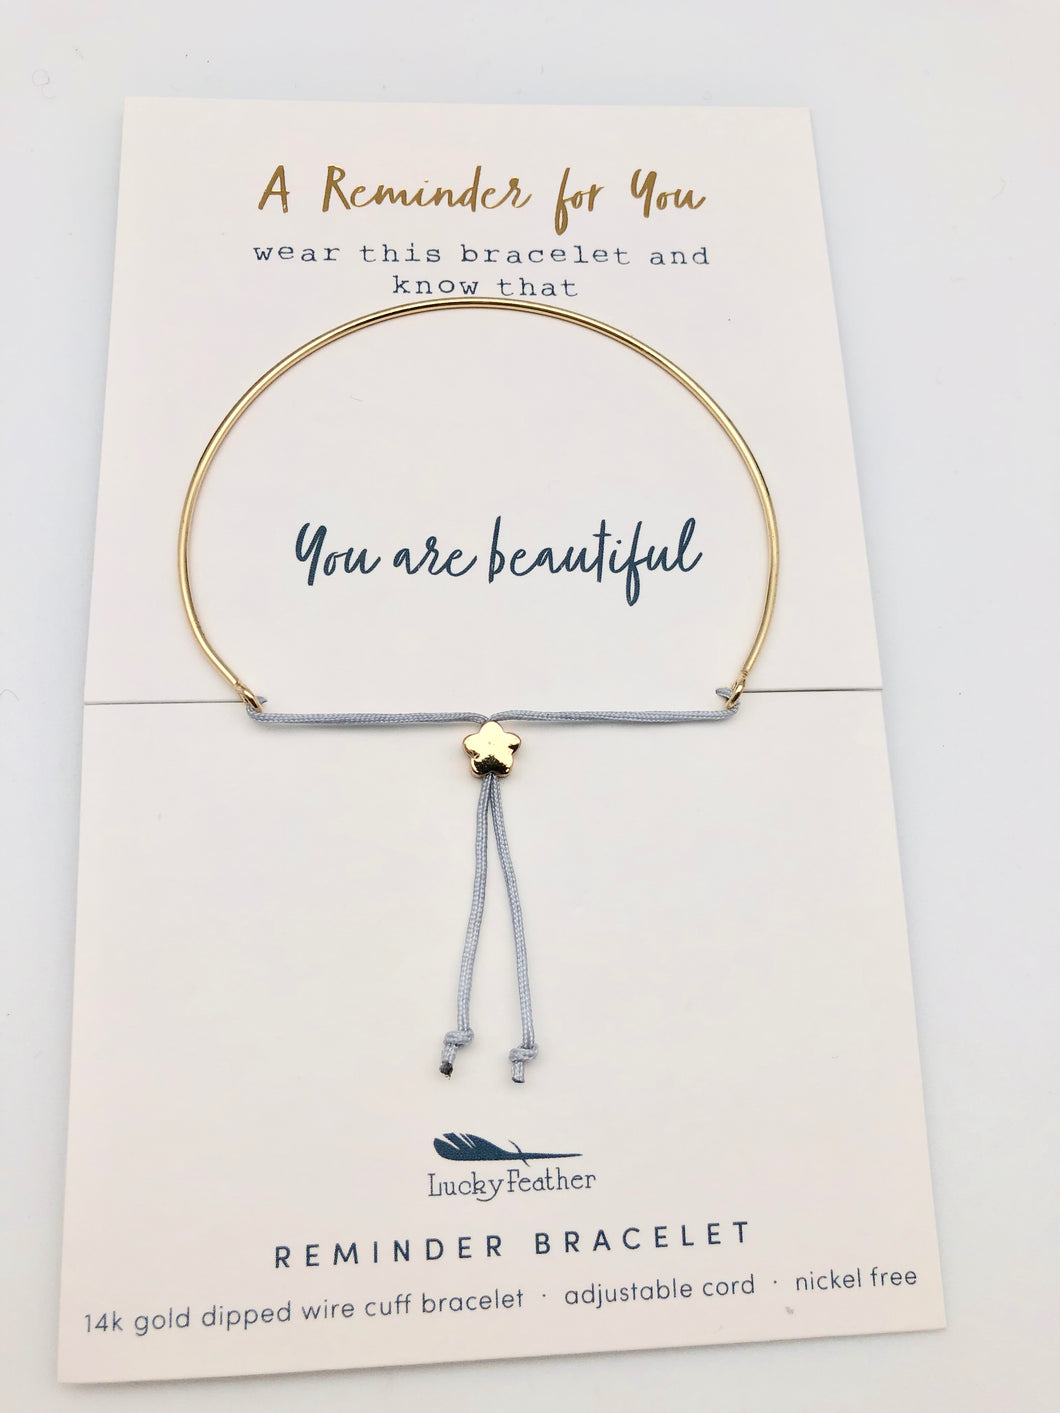 Lucky Feather Reminder Bracelet - You Are Beautiful